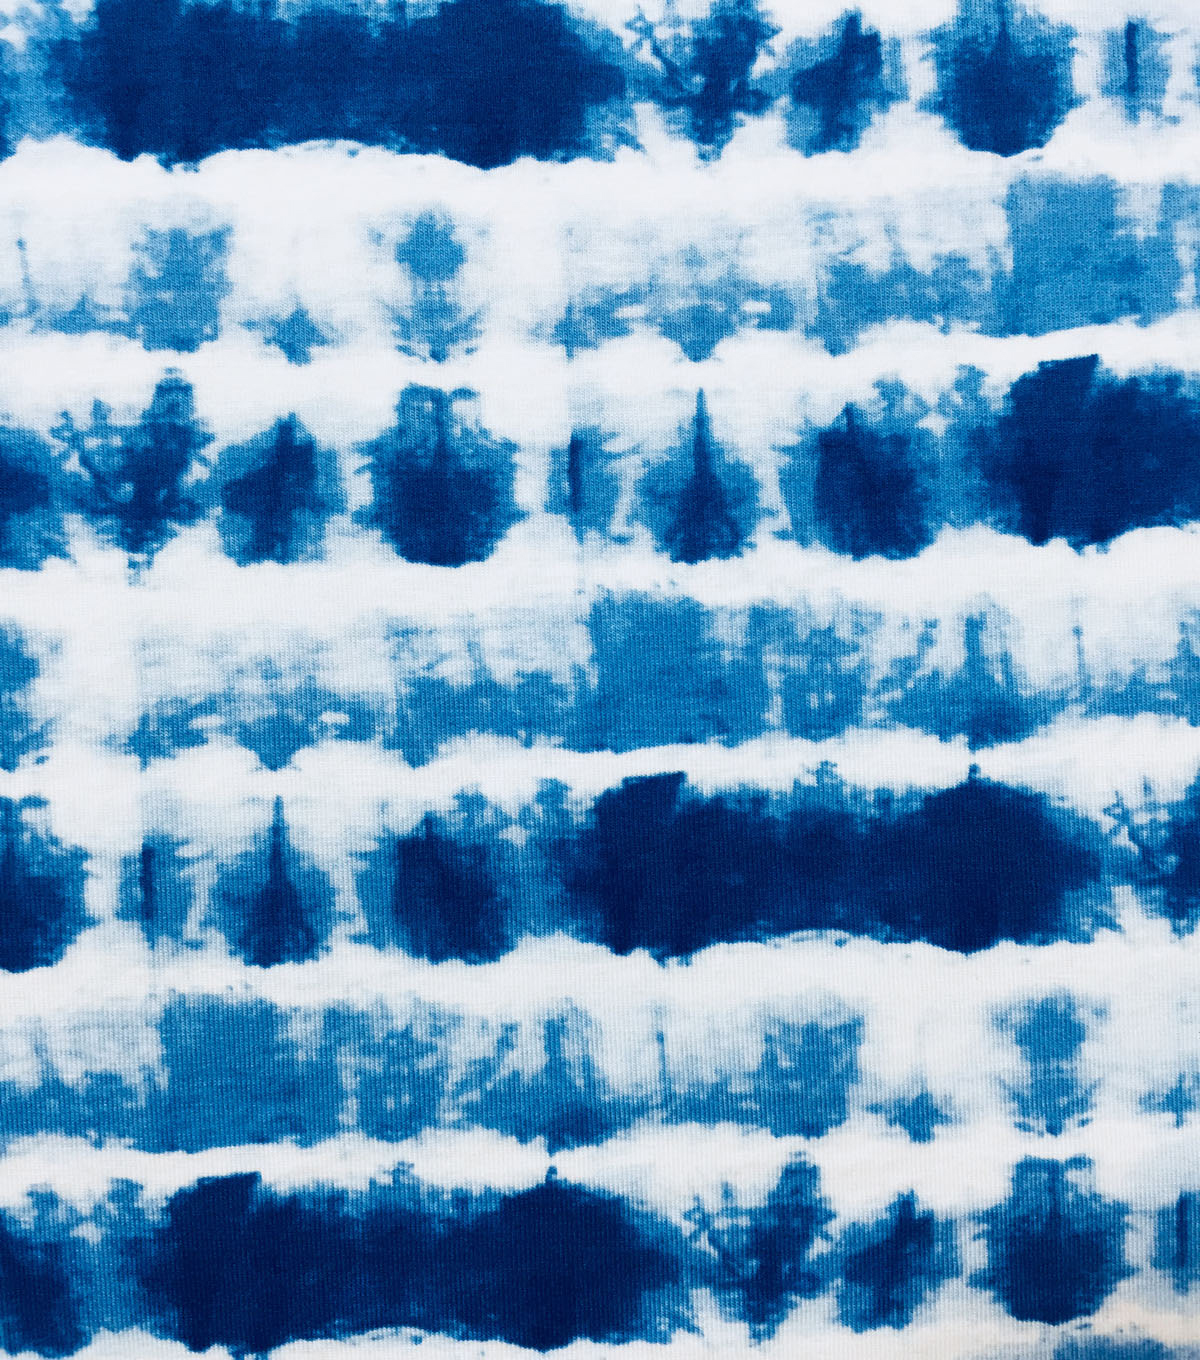 Knit Prints Rayon Spandex Fabric-Blue White Tie Dye